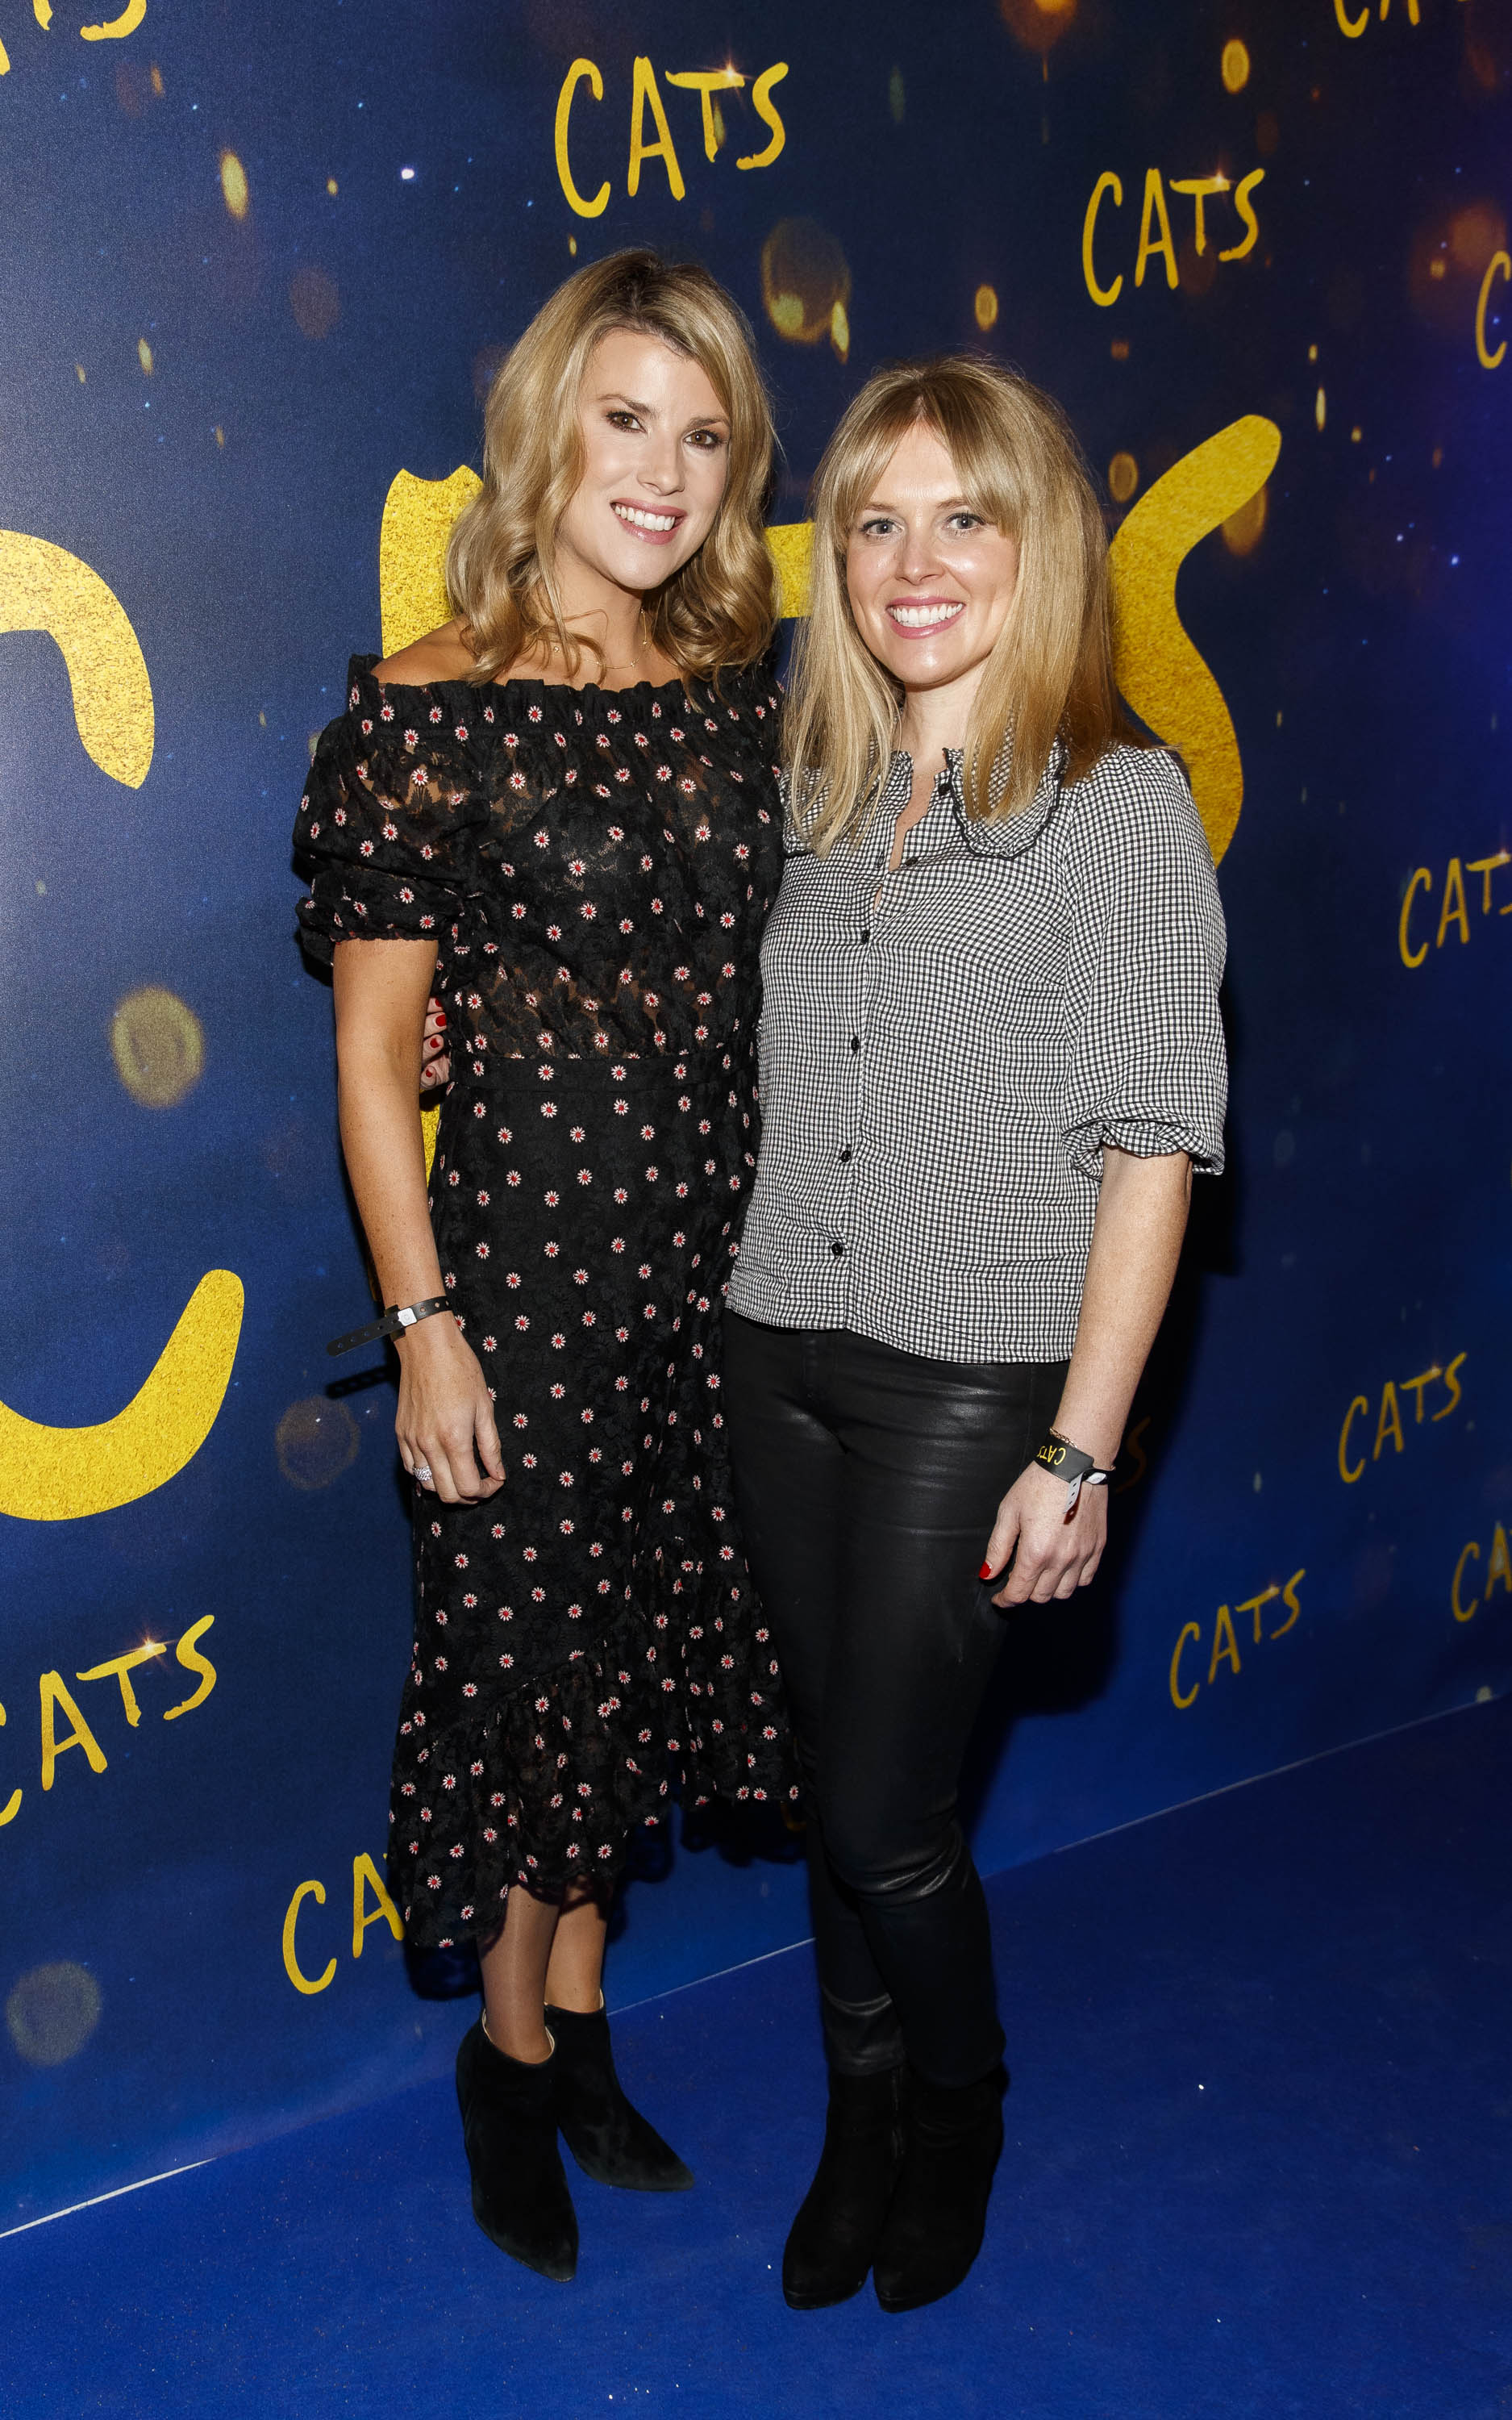 Jenny Buckley and Amy Crighton pictured at the Irish premiere screening of 'Cats' at The Stella Theatre, Rathmines. Picture: Andres Poveda